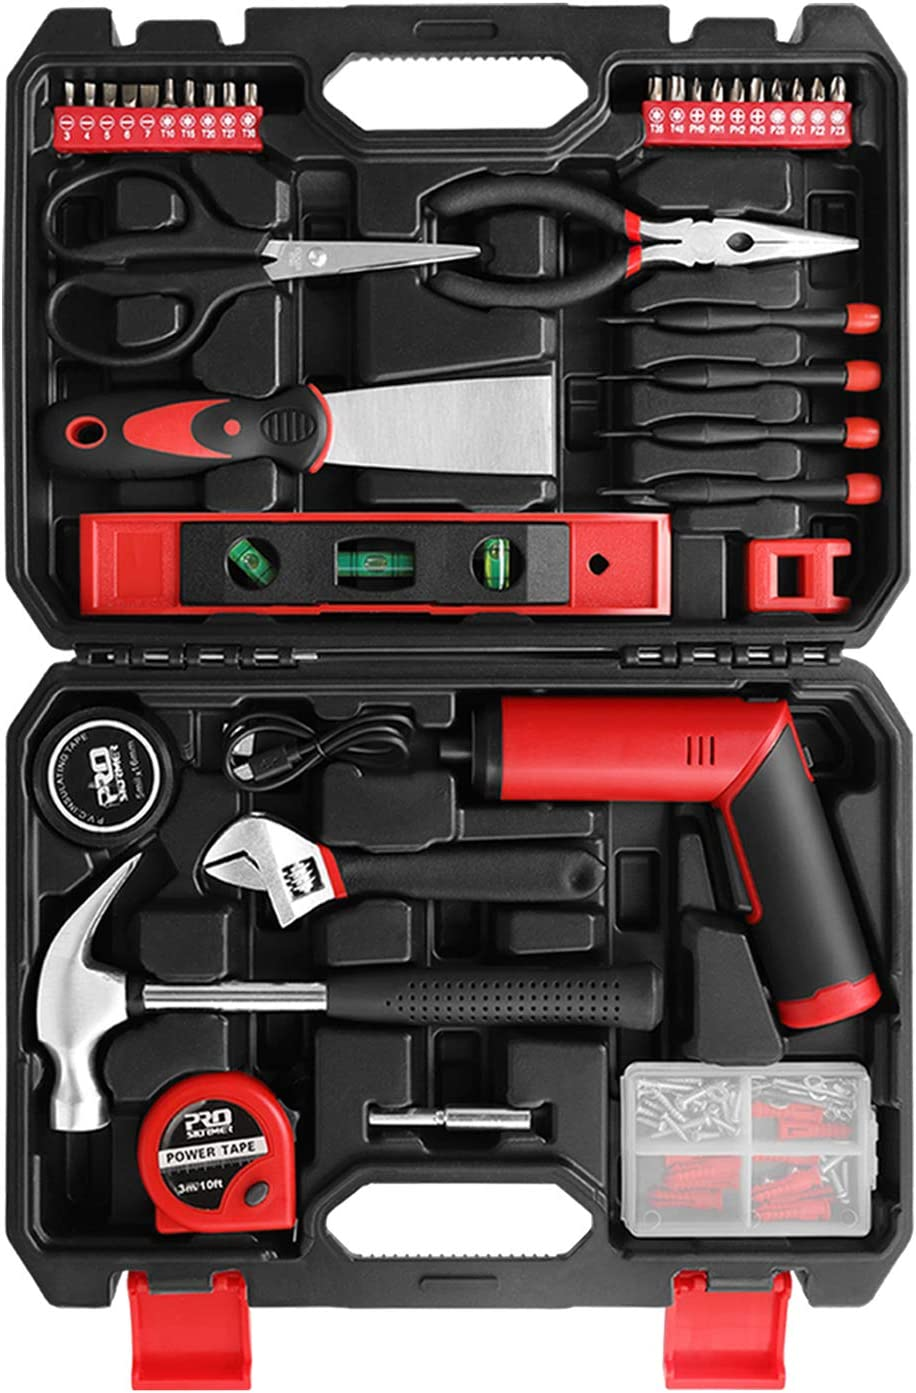 PROSTORMER 57-Piece Household Tool Kit, Basic Home Repair Set with Cordless Electric Screwdriver for DIY & Home Maintenance with Plastic Toolbox Storage Case